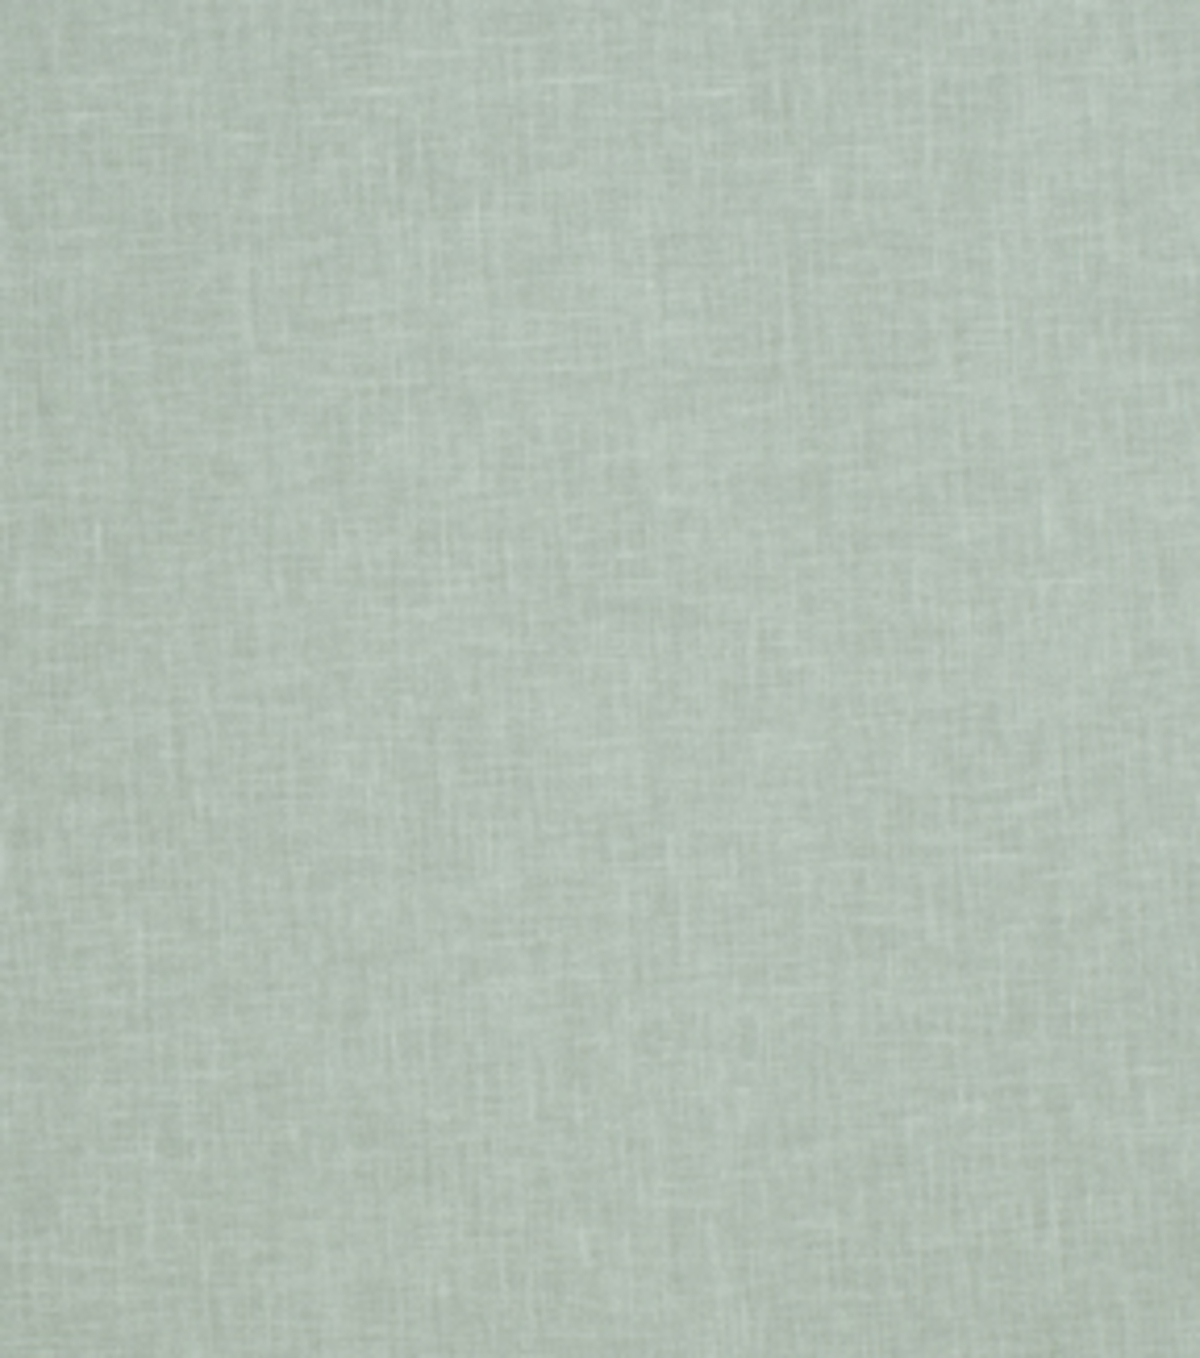 Home Decor 8\u0022x8\u0022 Fabric Swatch-Eaton Square Bannister Water